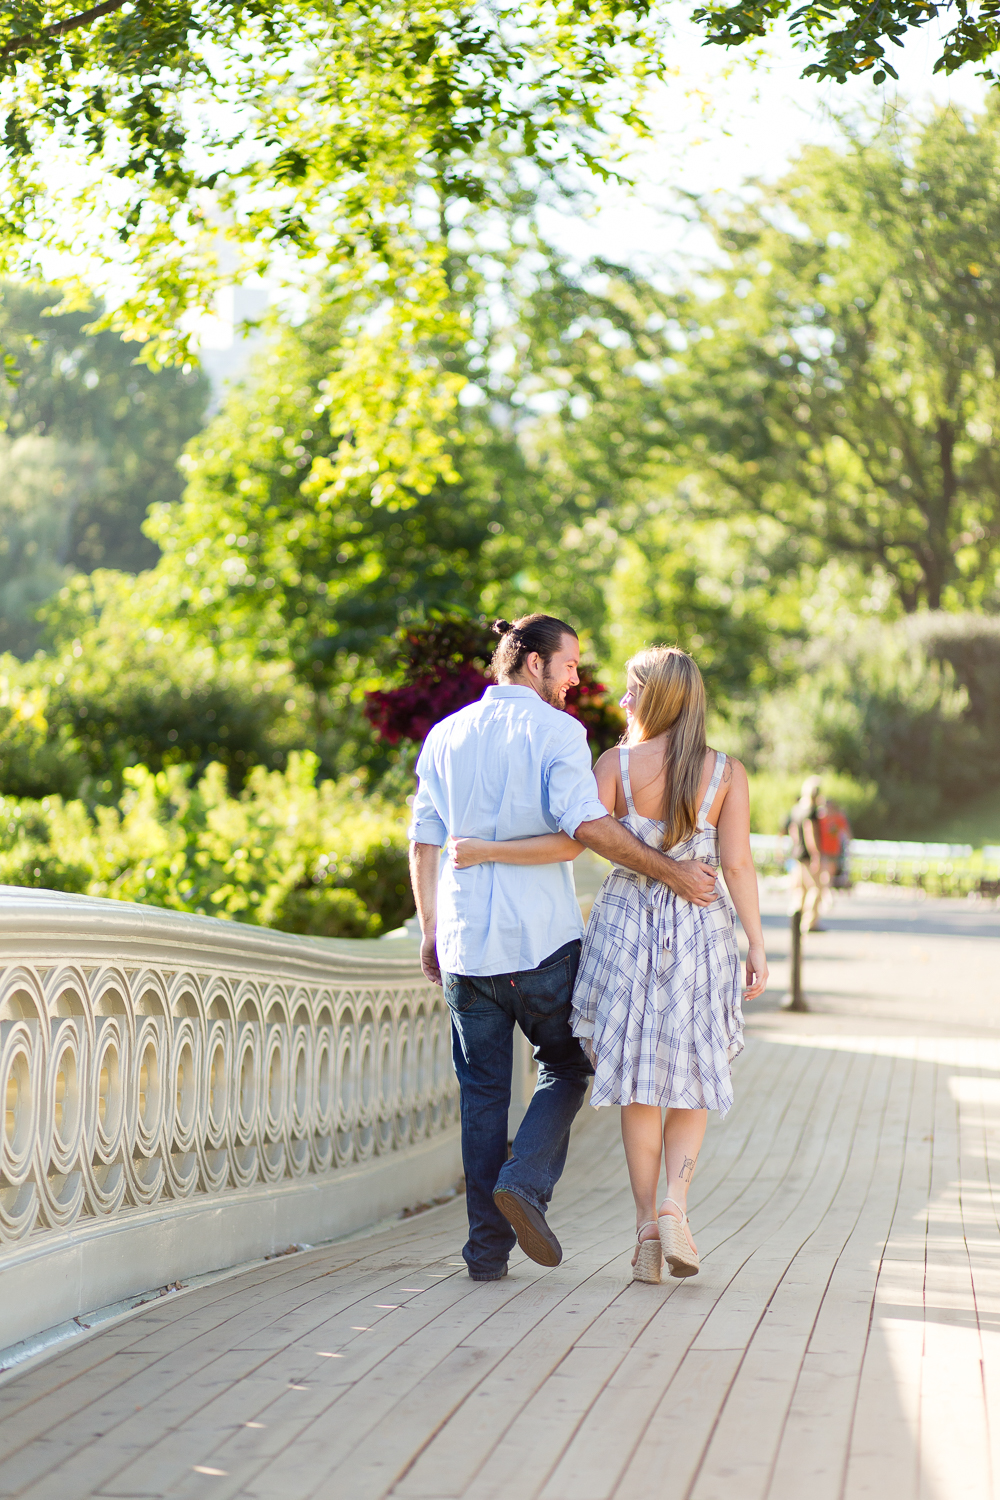 nyc-central-park-engagement-inspiration-8.jpg